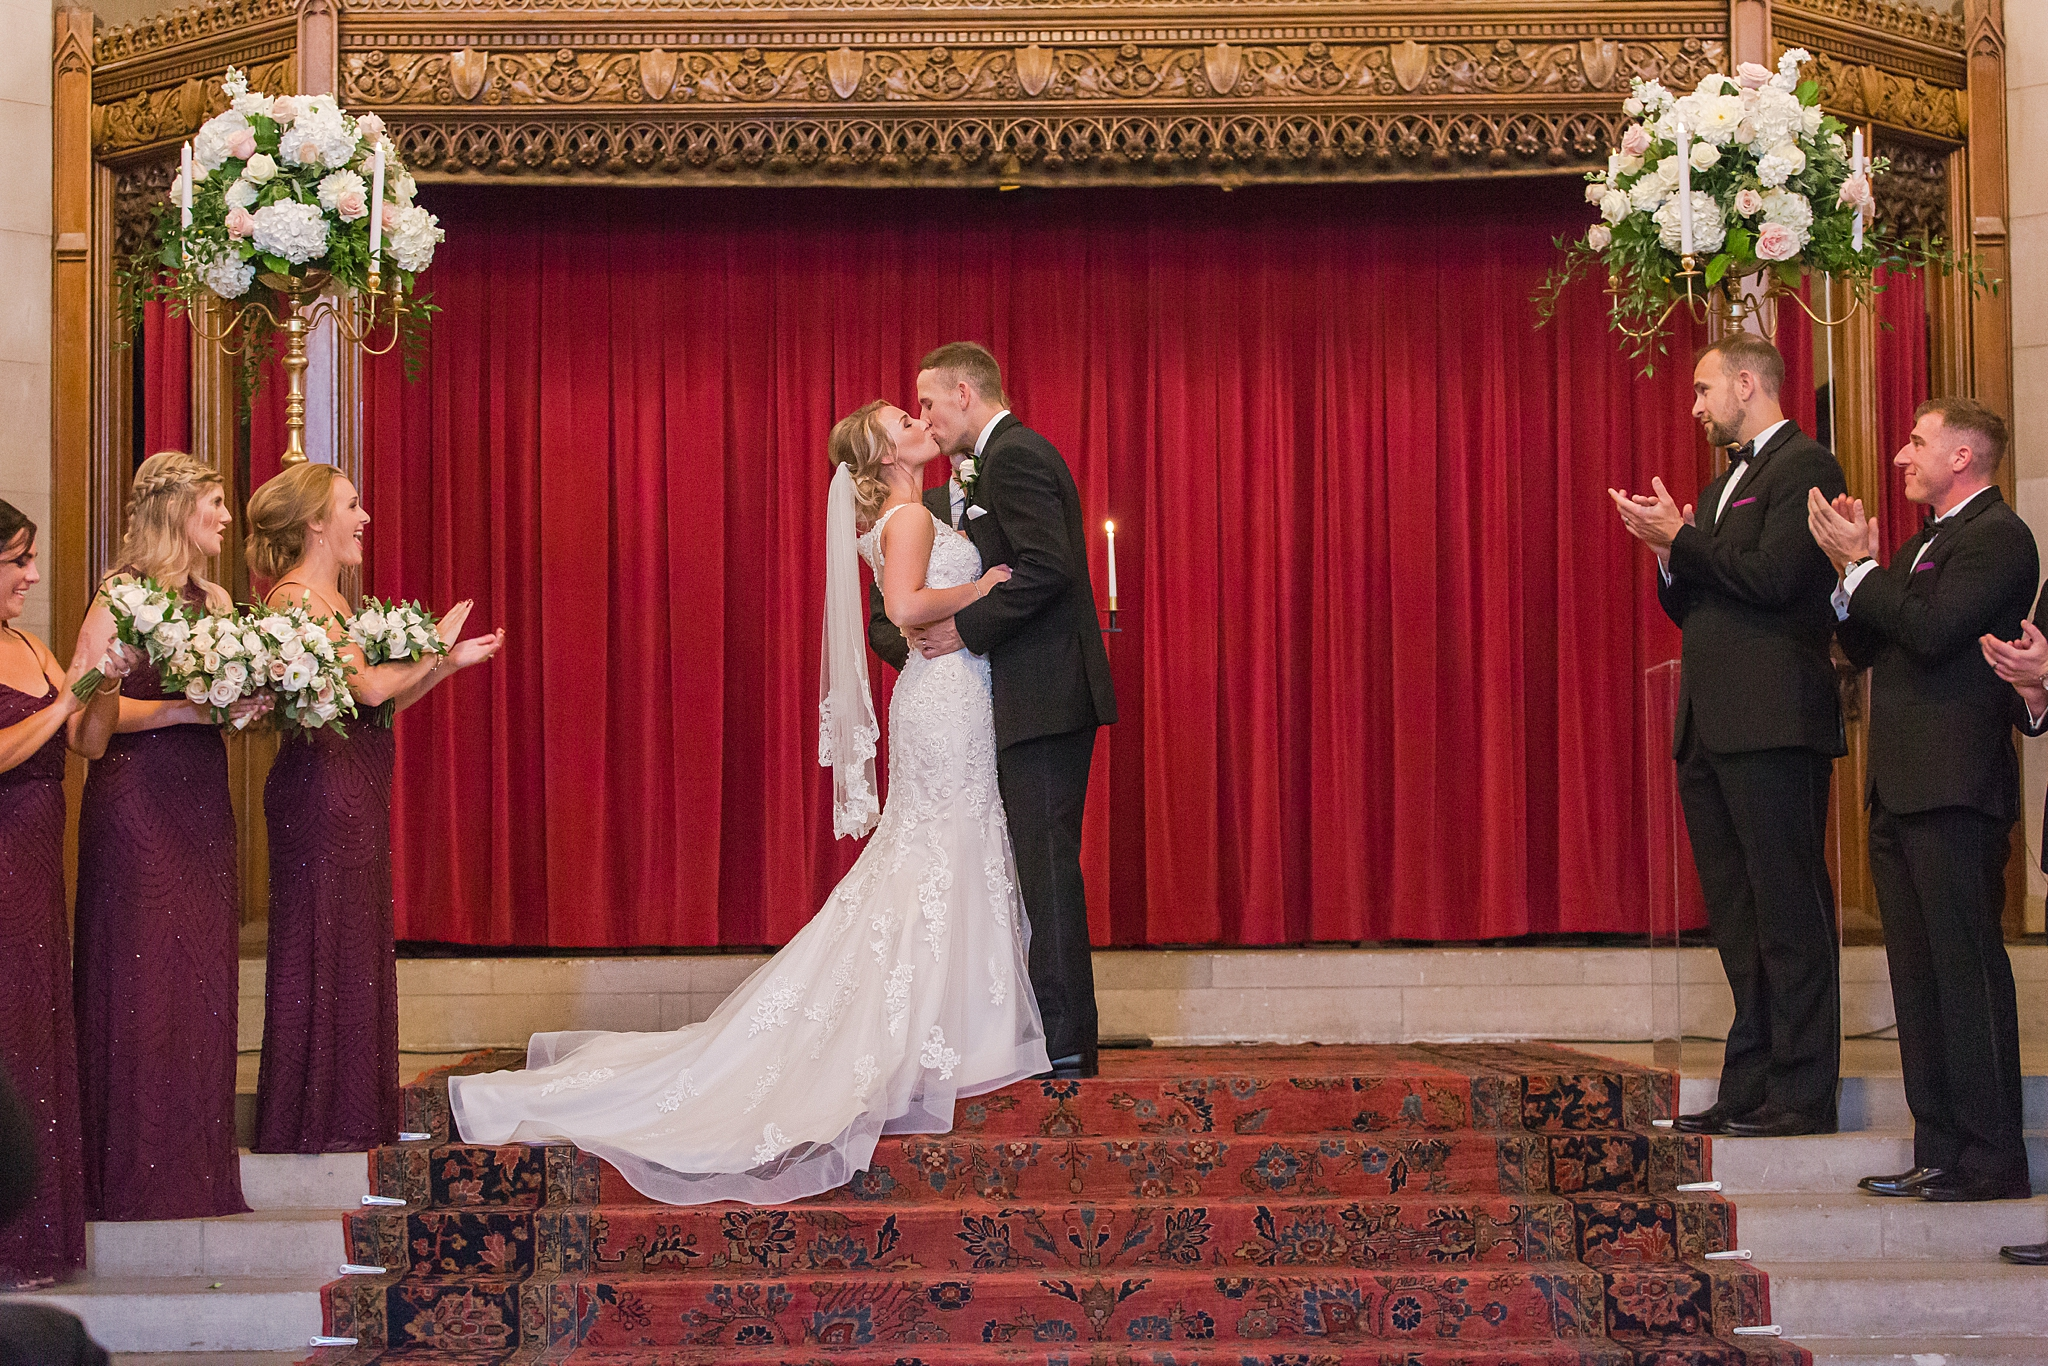 masonic-temple-iconic-wedding-photography-in-detroit-michigan-by-courtney-carolyn-photography_0048.jpg